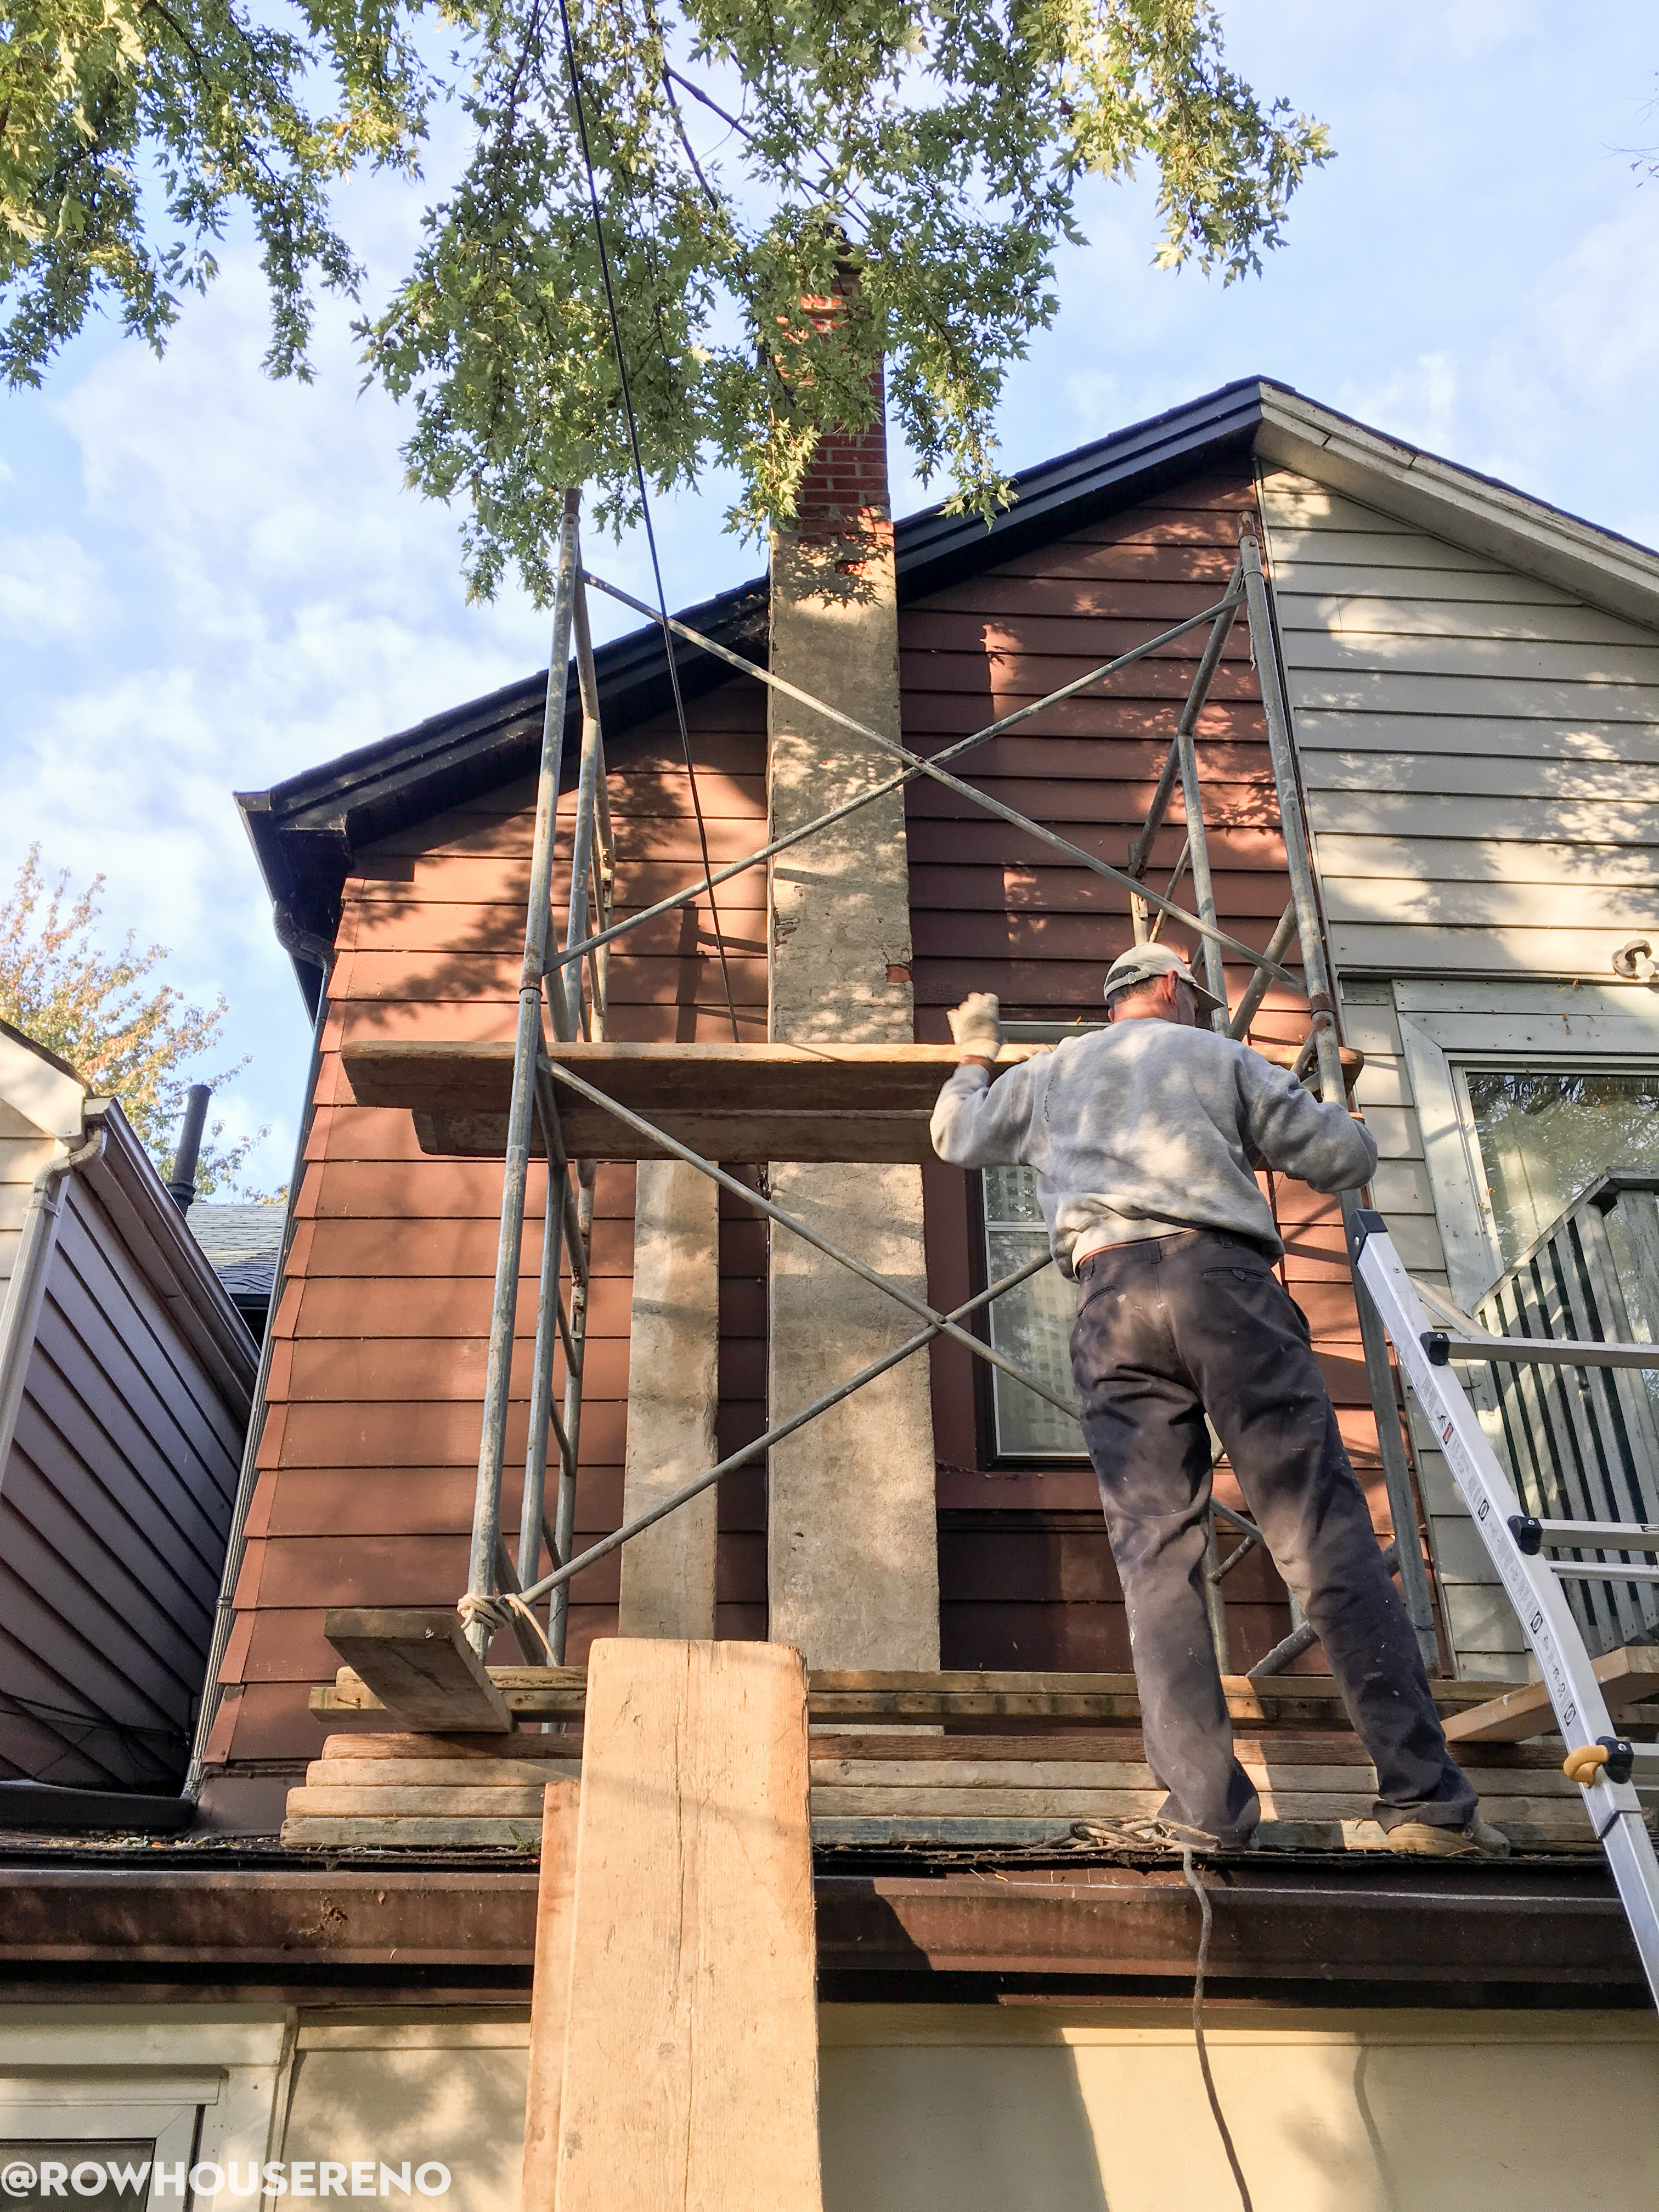 How to remove a chimney - Old Chimney Scaffolding